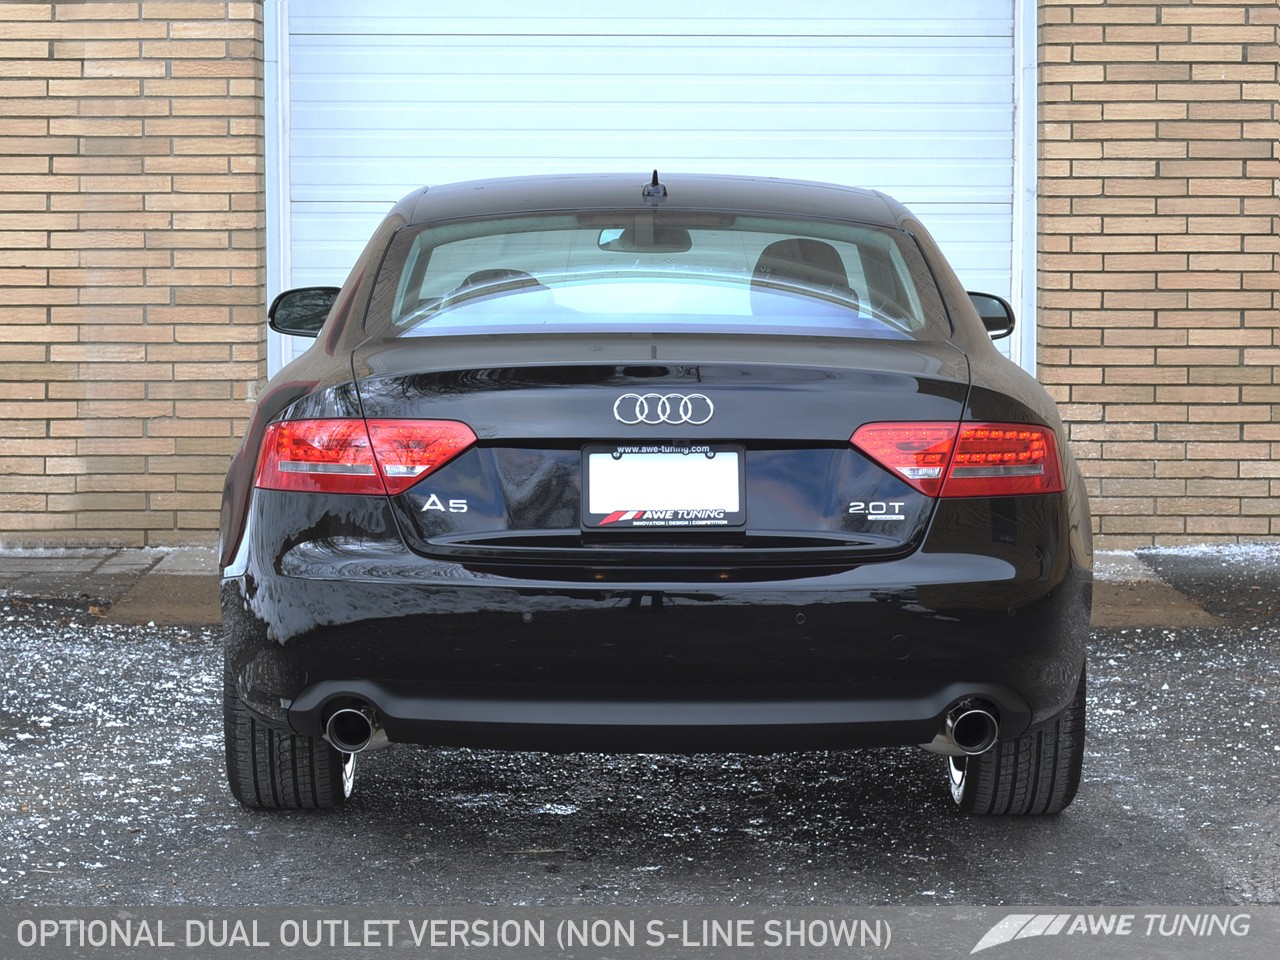 Audi A5 Exhaust  custom exhaust w titanium tips 3 2 pics